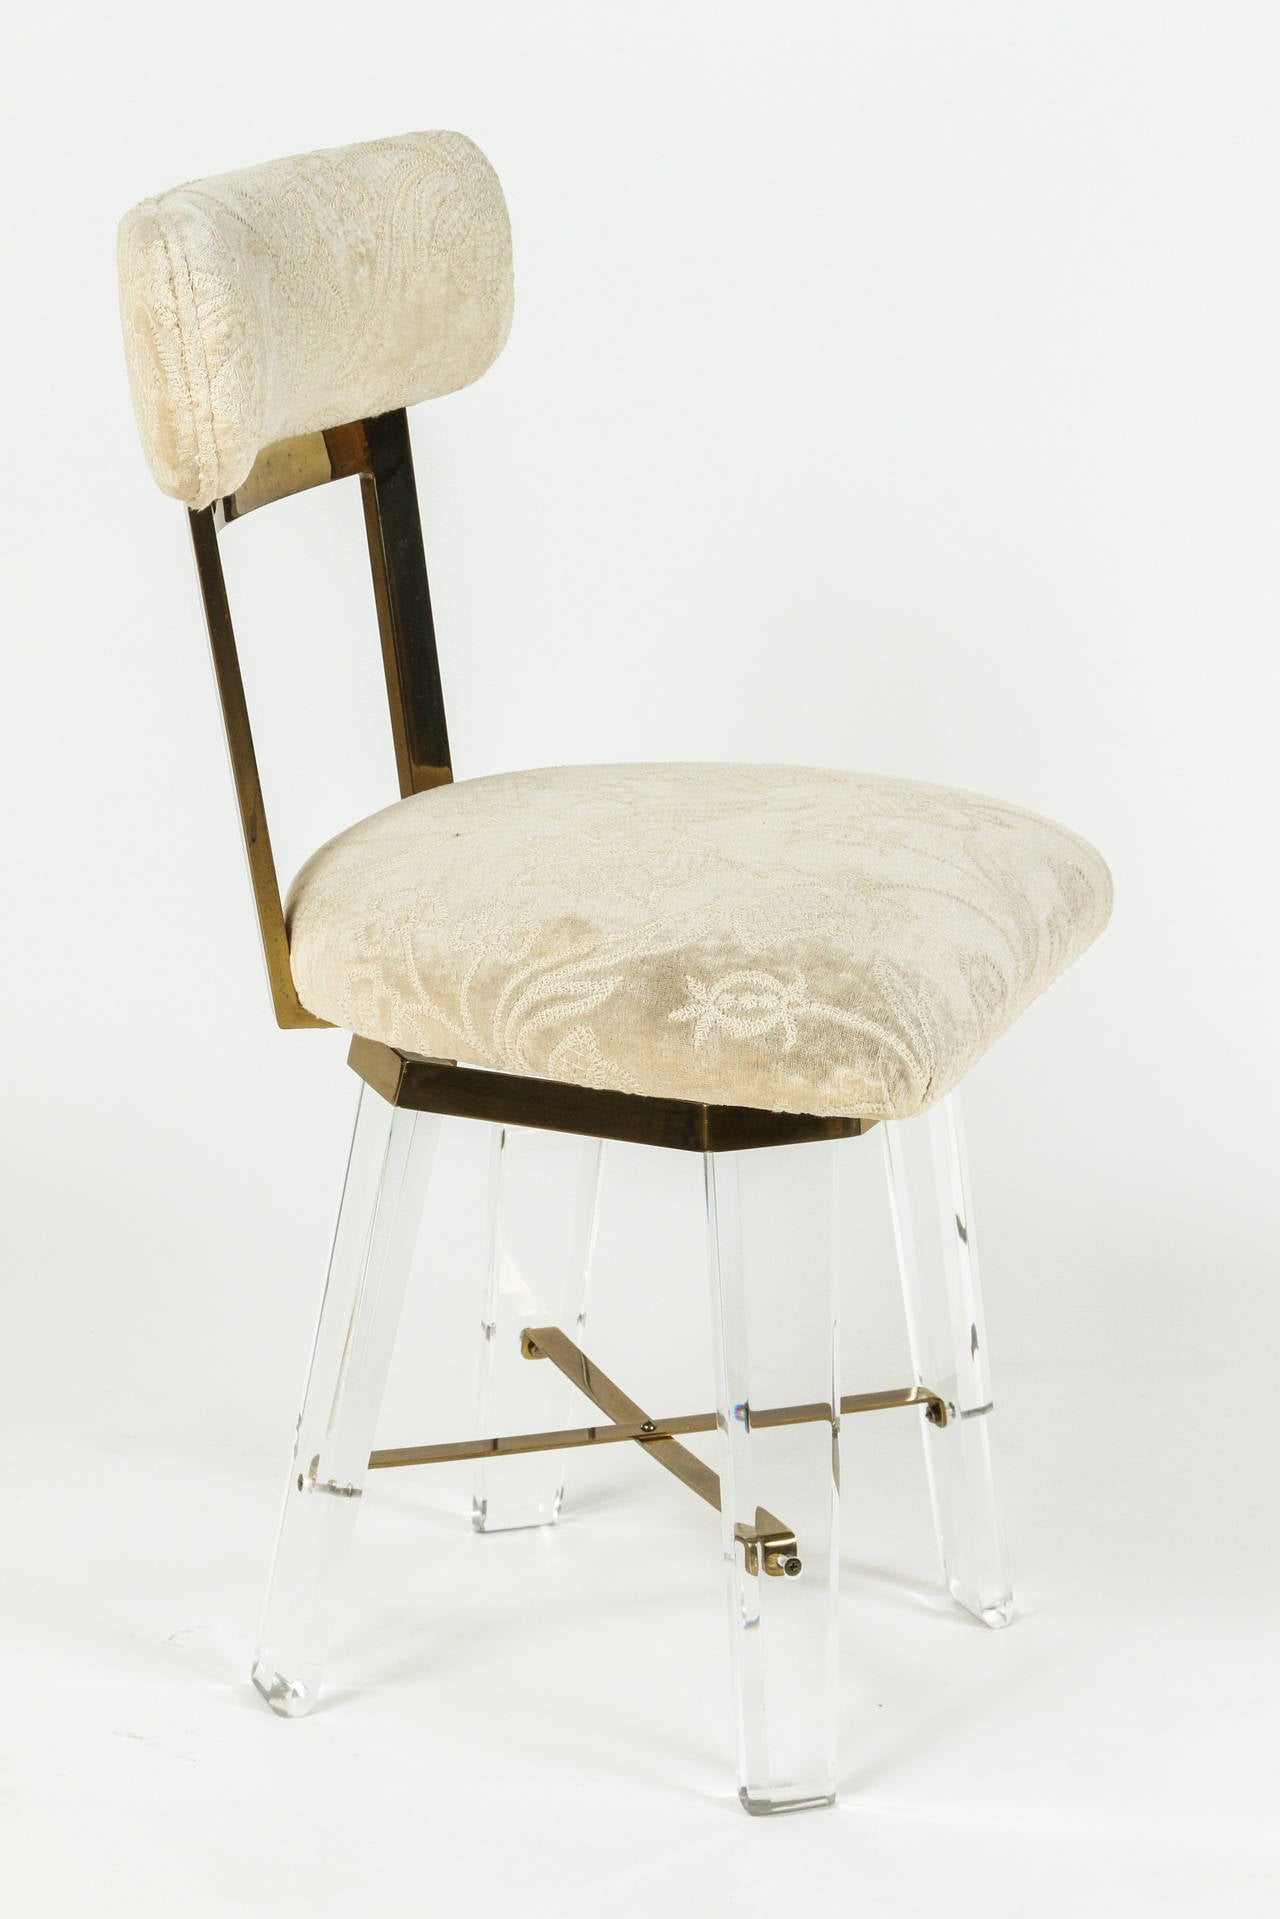 Fancy Swivel Chairs Elegant Lucite And Brass Swiveling Vanity Chair At 1stdibs